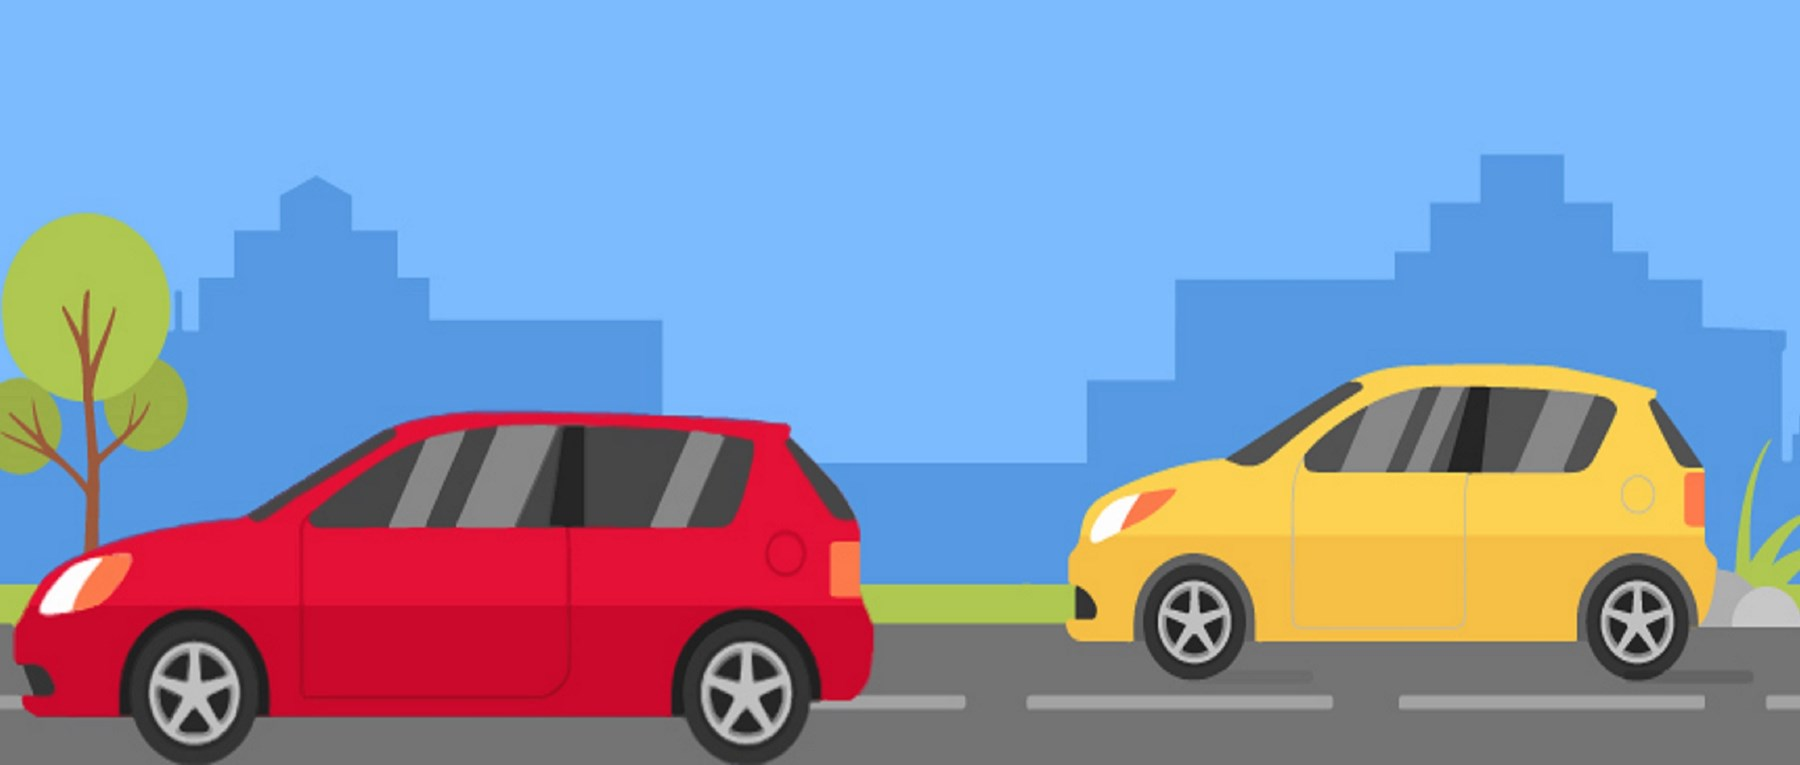 Car insurance illustration